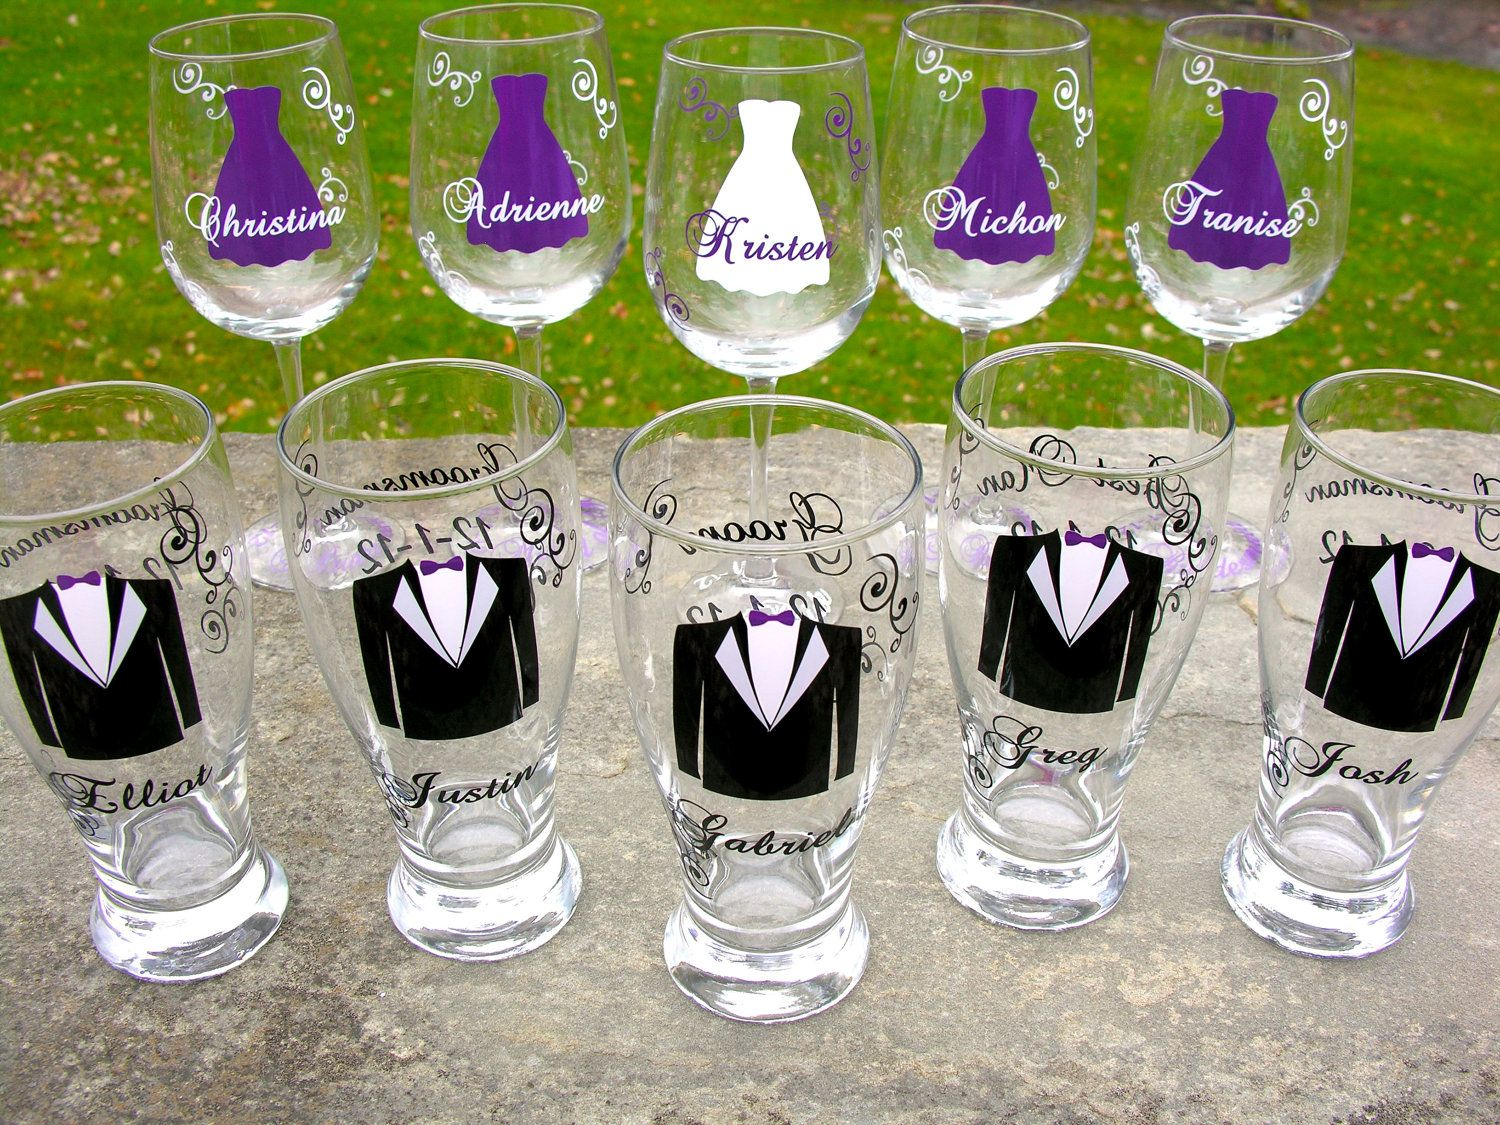 Wedding party glasses wine glasses and beer pilsner glasses wedding party glasses wine glasses and beer pilsner glasses bridesmaids and groomsman gifts junglespirit Choice Image